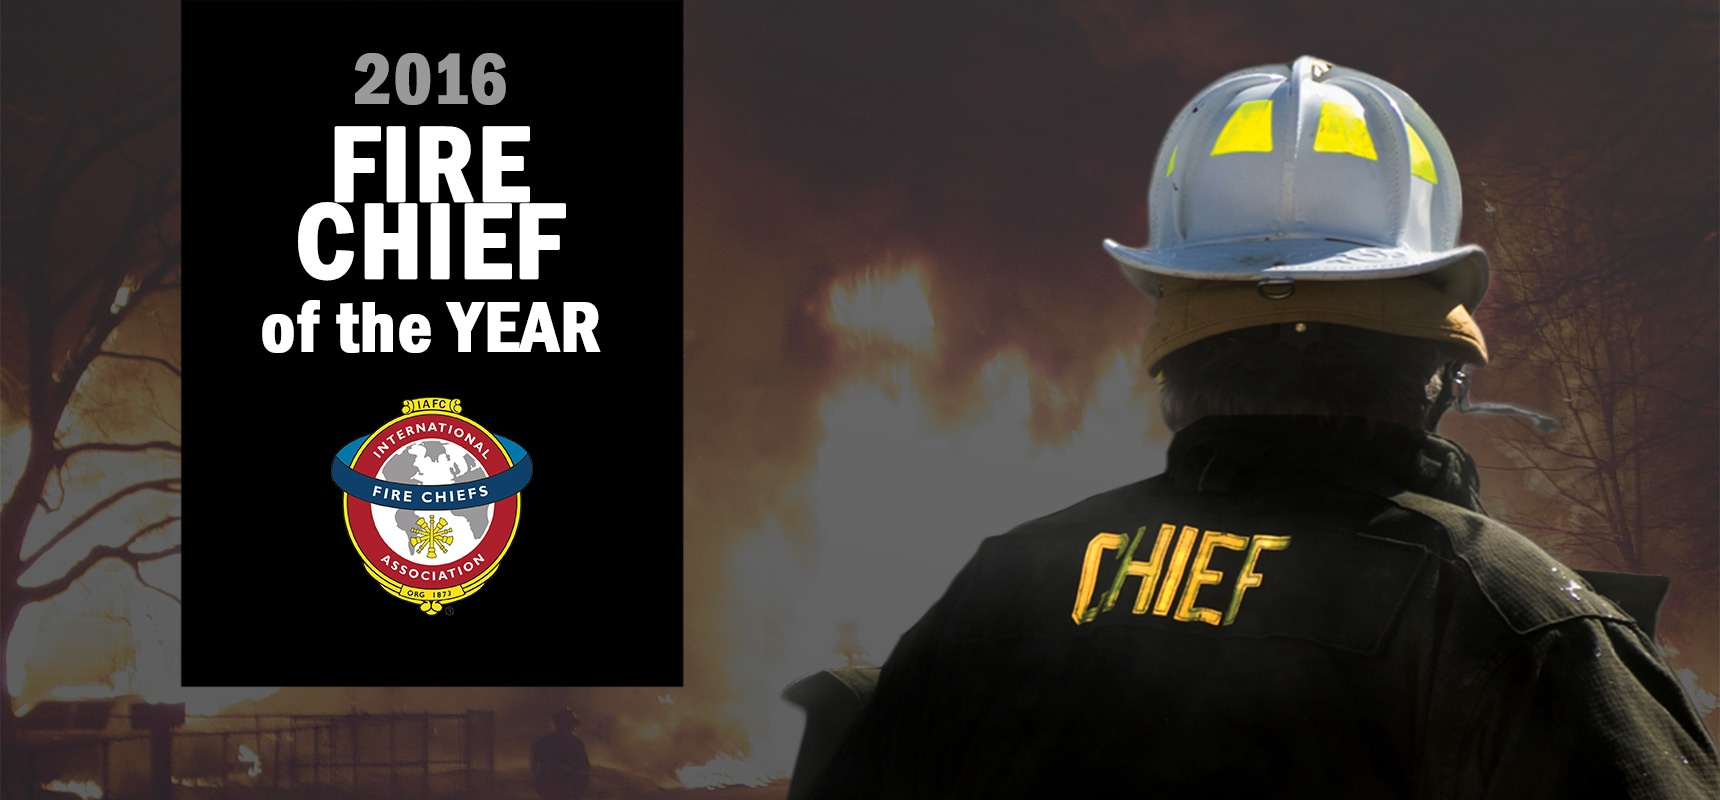 Pierce-Manufacturing-and-the-IAFC-Honor-2016-Career-and-Volunteer-Fire-Chiefs-of-the-Year_Header.jpg